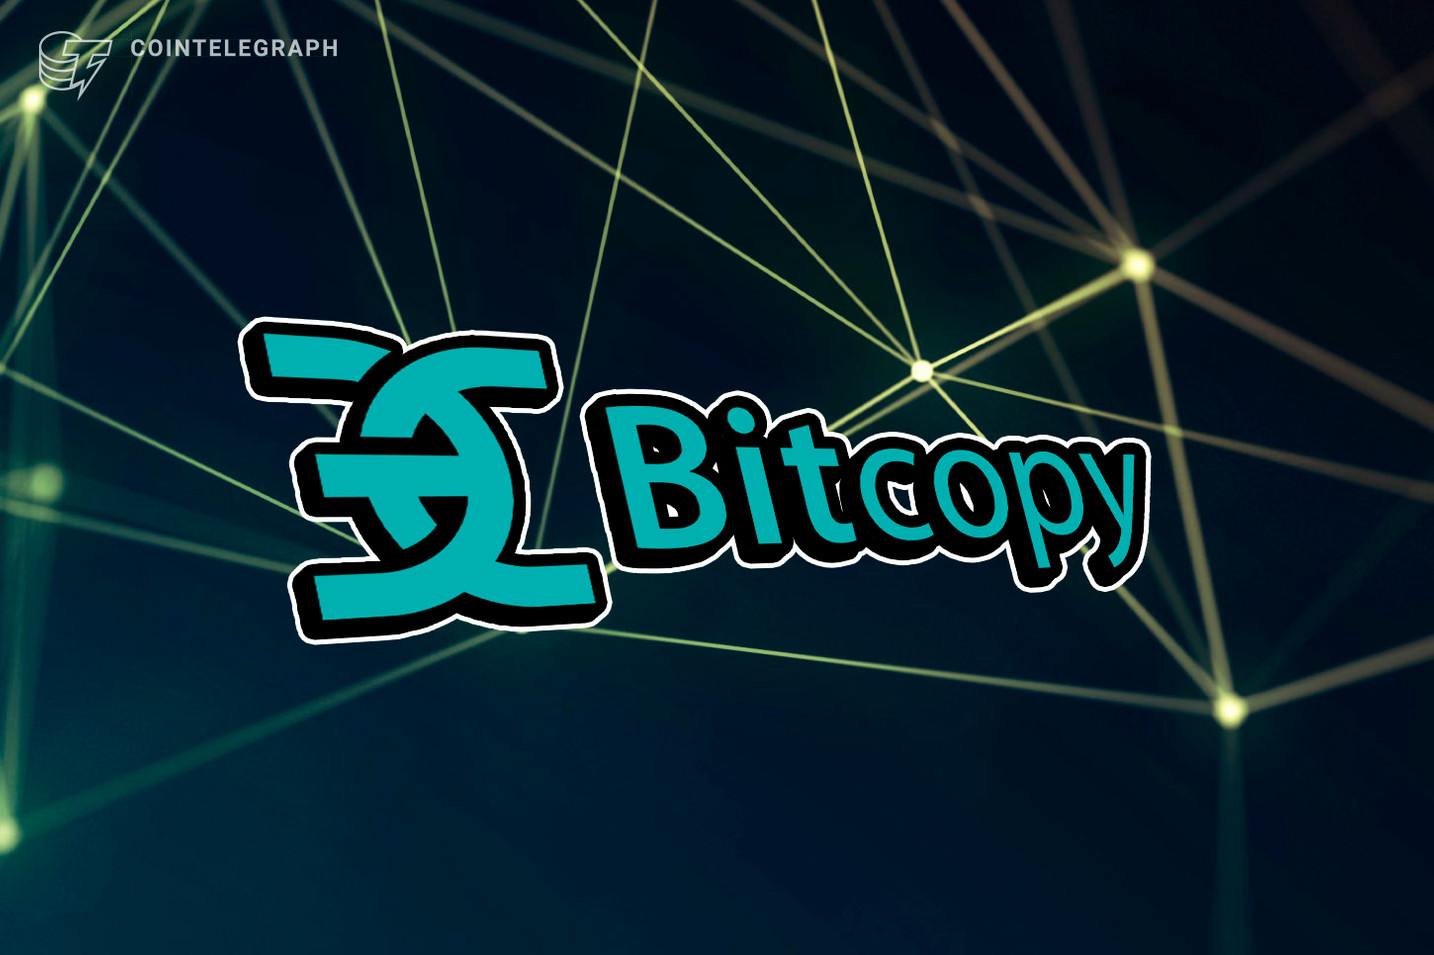 FTX and Copy Trade Bitcopy form a capital and business tie-up